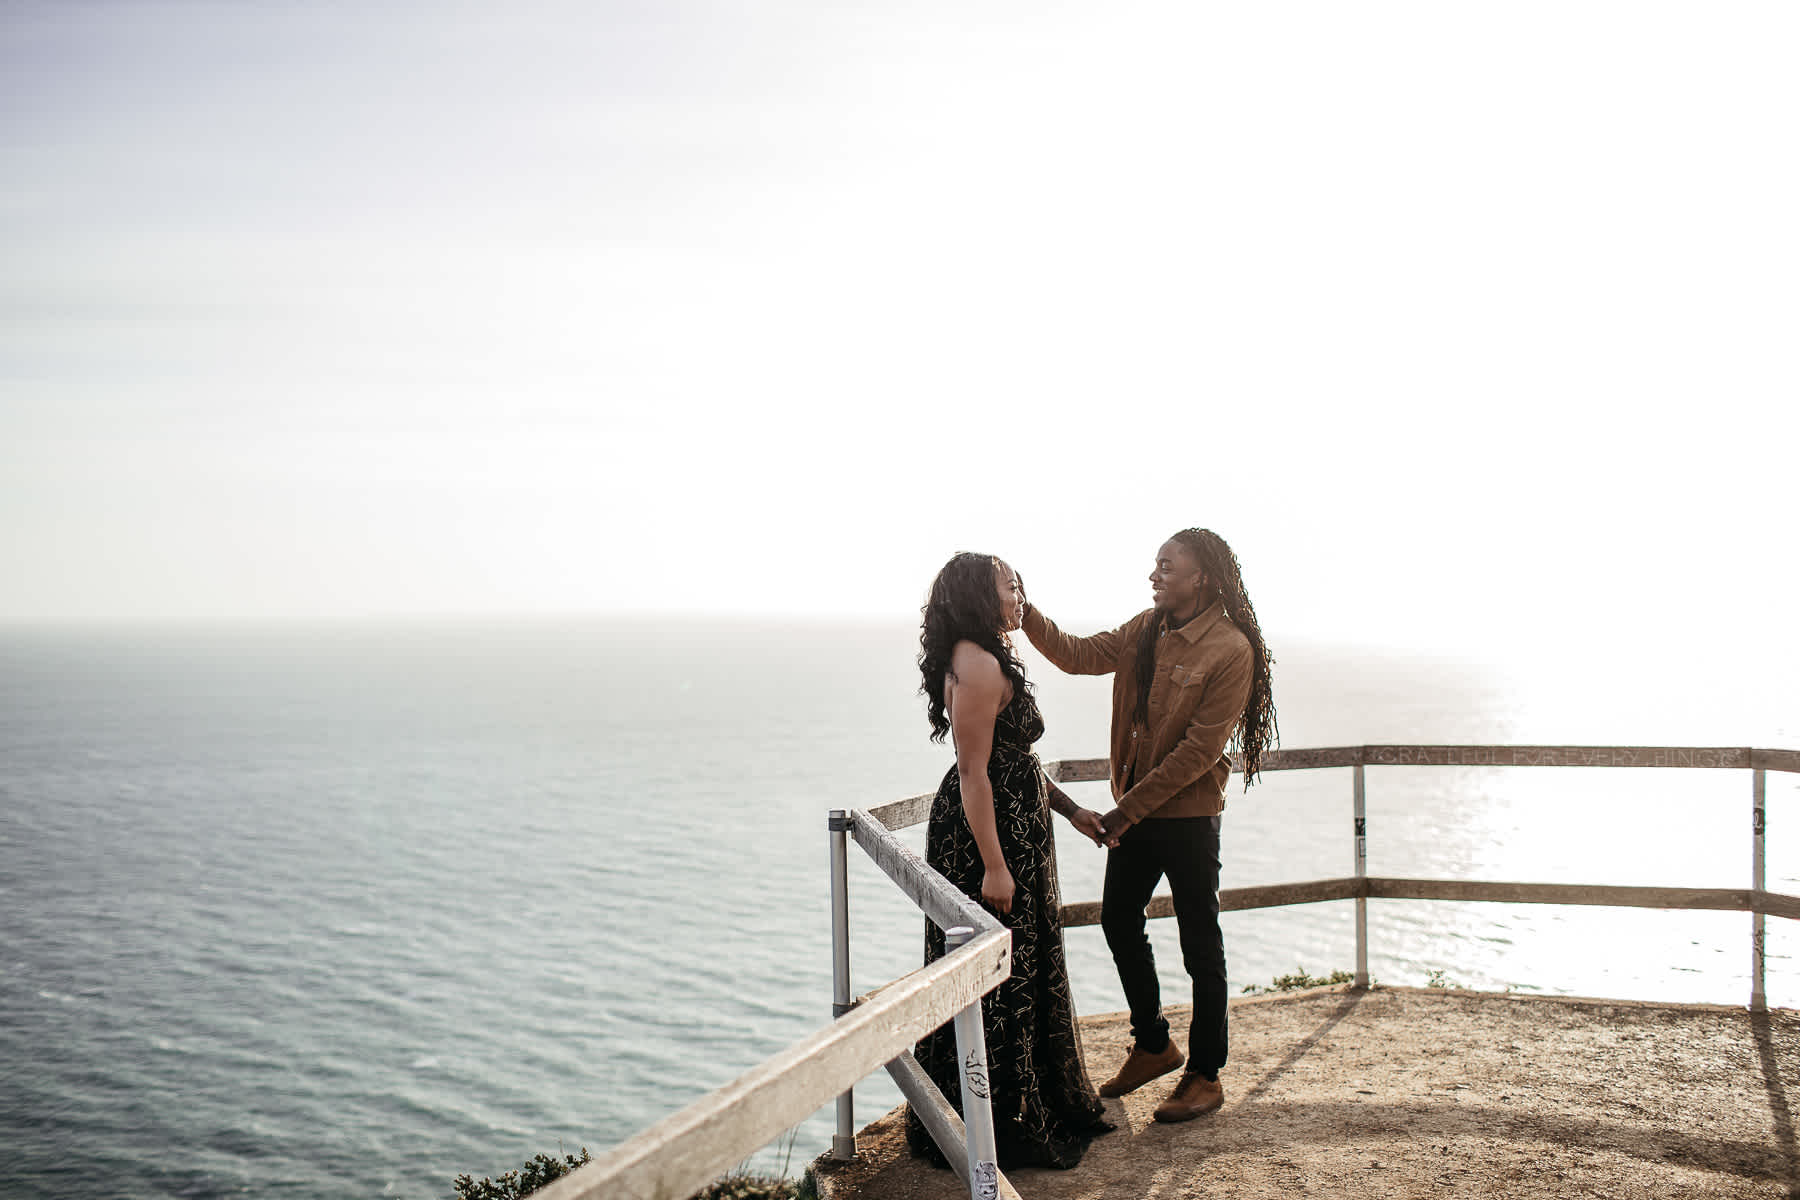 muir-beach-ca-spring-lifestyle-engagement-session-12